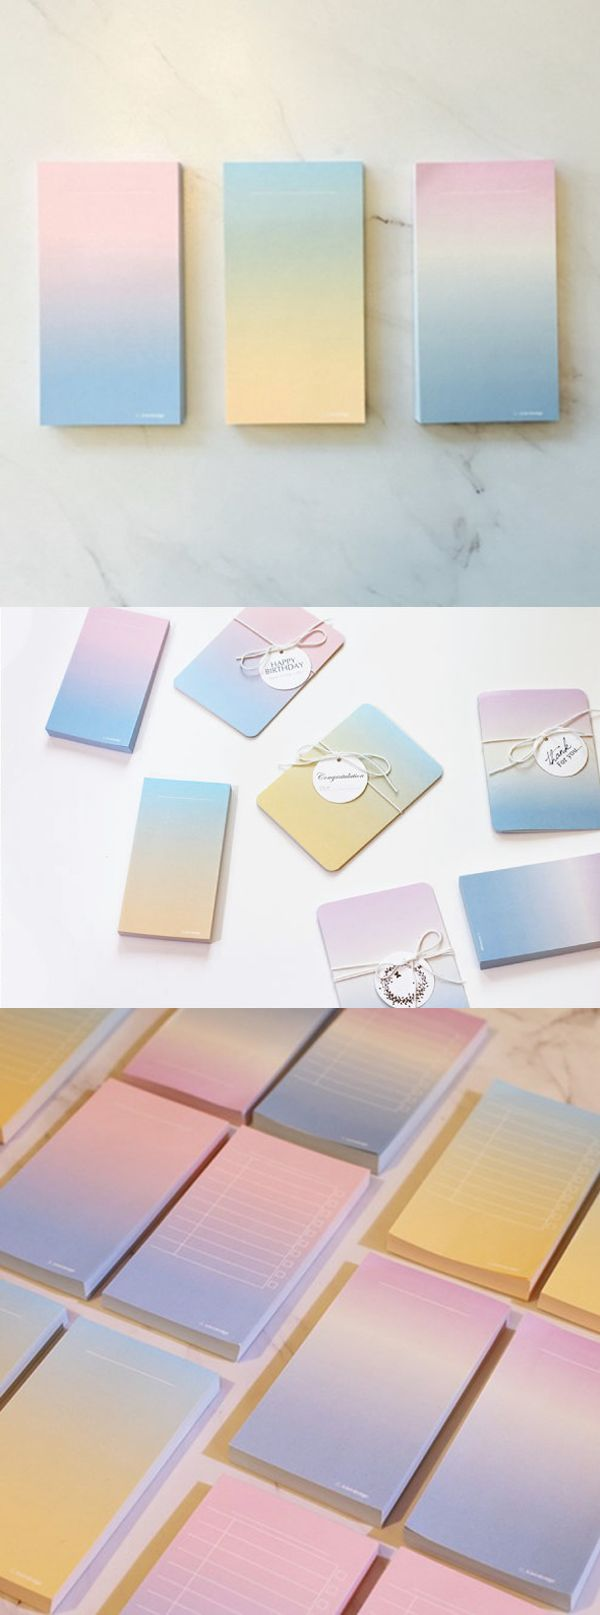 The Gradient Notepad is a beautiful and practical notepad to write your memos! Use it to write notes anywhere, and the let the notepad brighten up any place when it is placed on any surface.